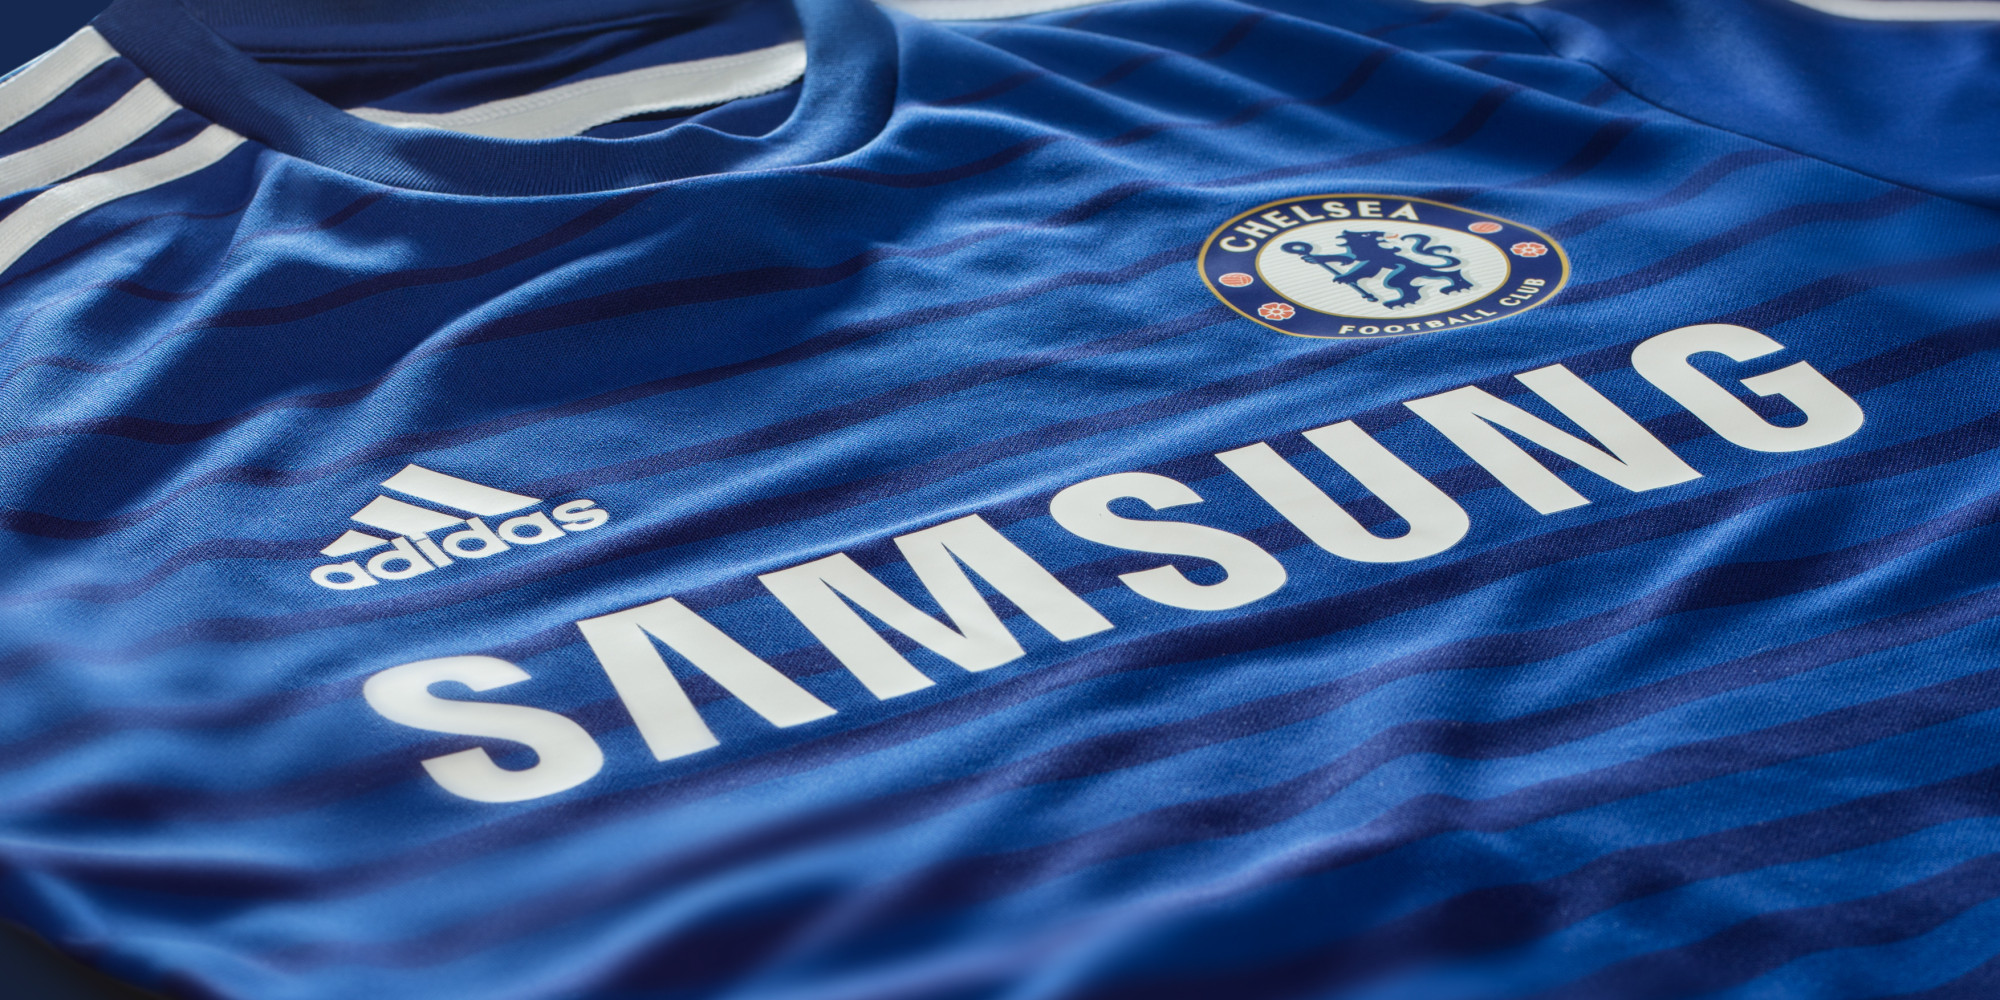 Samsung has sponsored Chelsea for 9 years now.